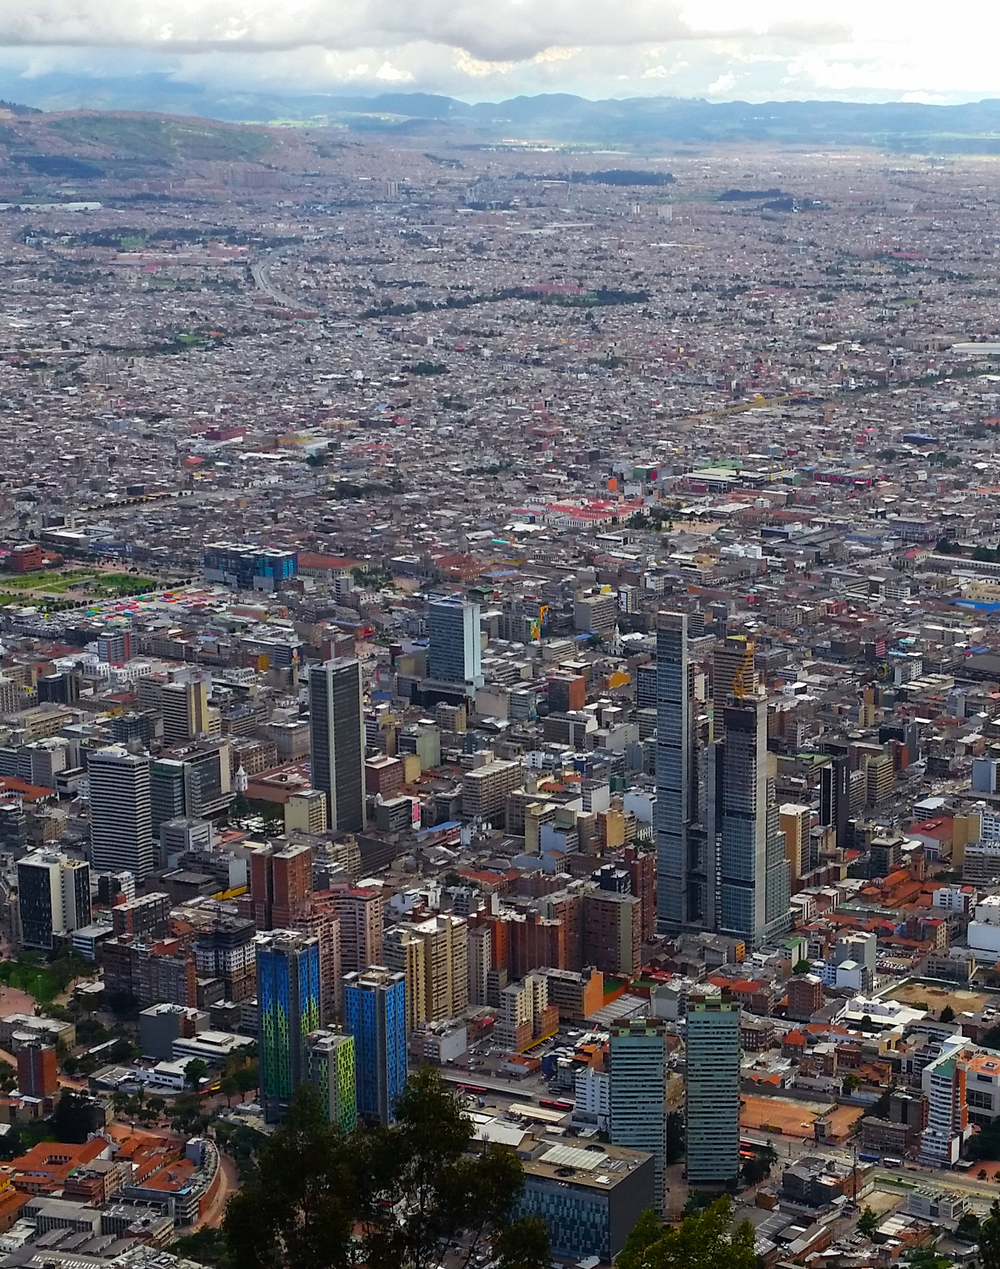 Bogotá is the capital and largest city in Colombia with more than 7.8 million residents. This incredible Overview was captured by our friend Oscar Pocasangre from Cerro Monserrate, a mountain that rises 10,341 feet (2,152 meters) above sea level and overlooks the city center.